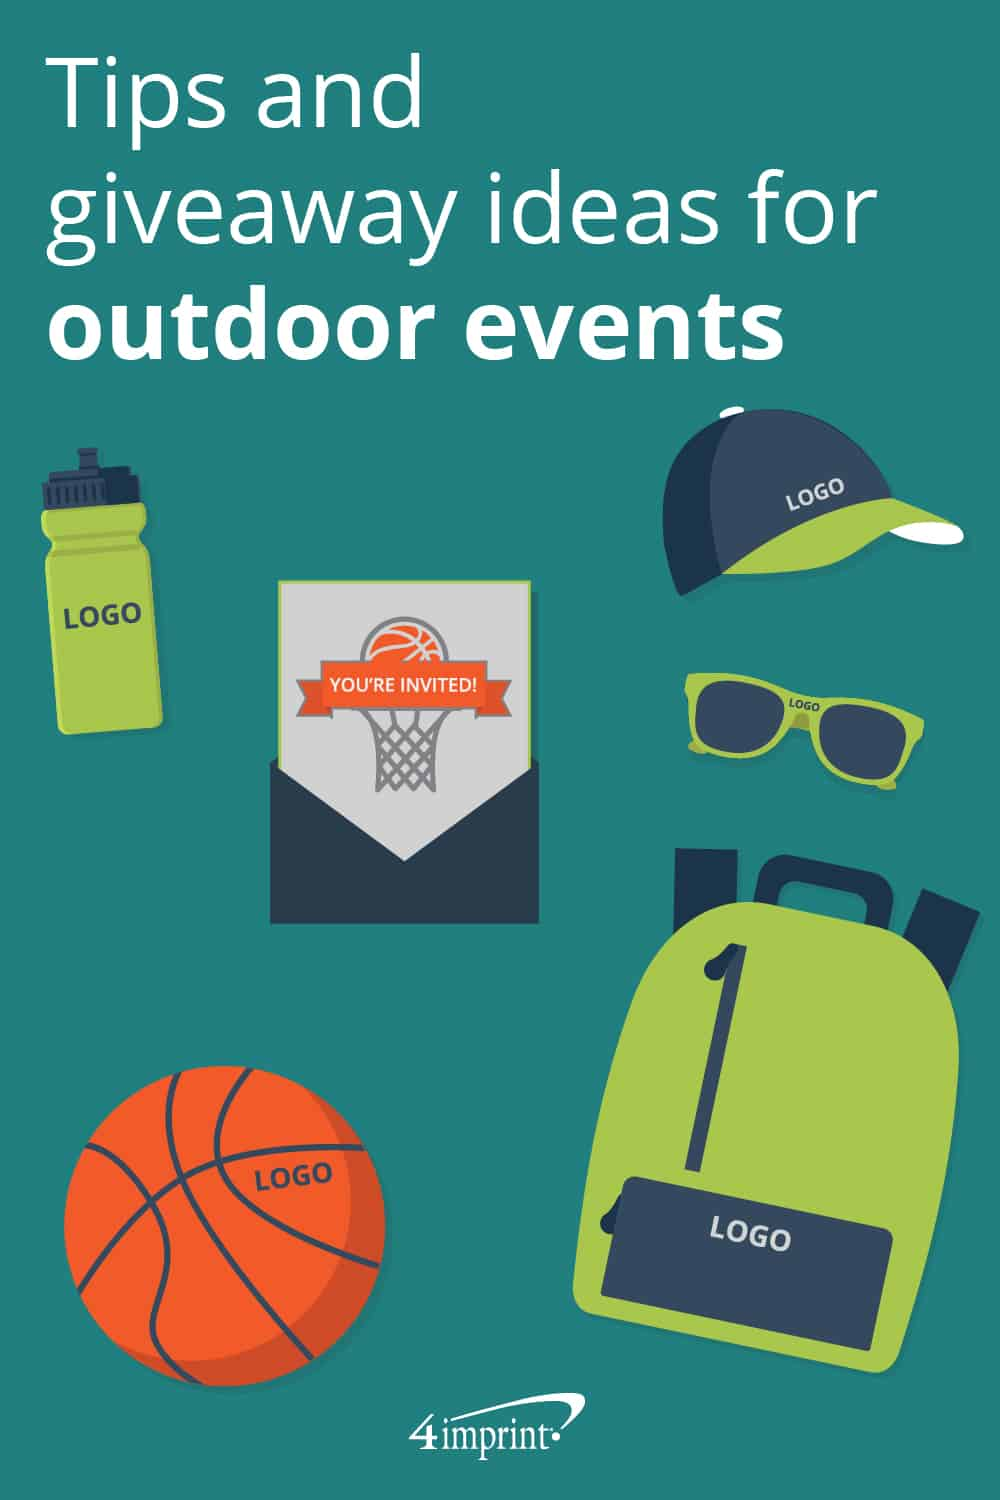 Tips and giveaway ideas for outdoor events